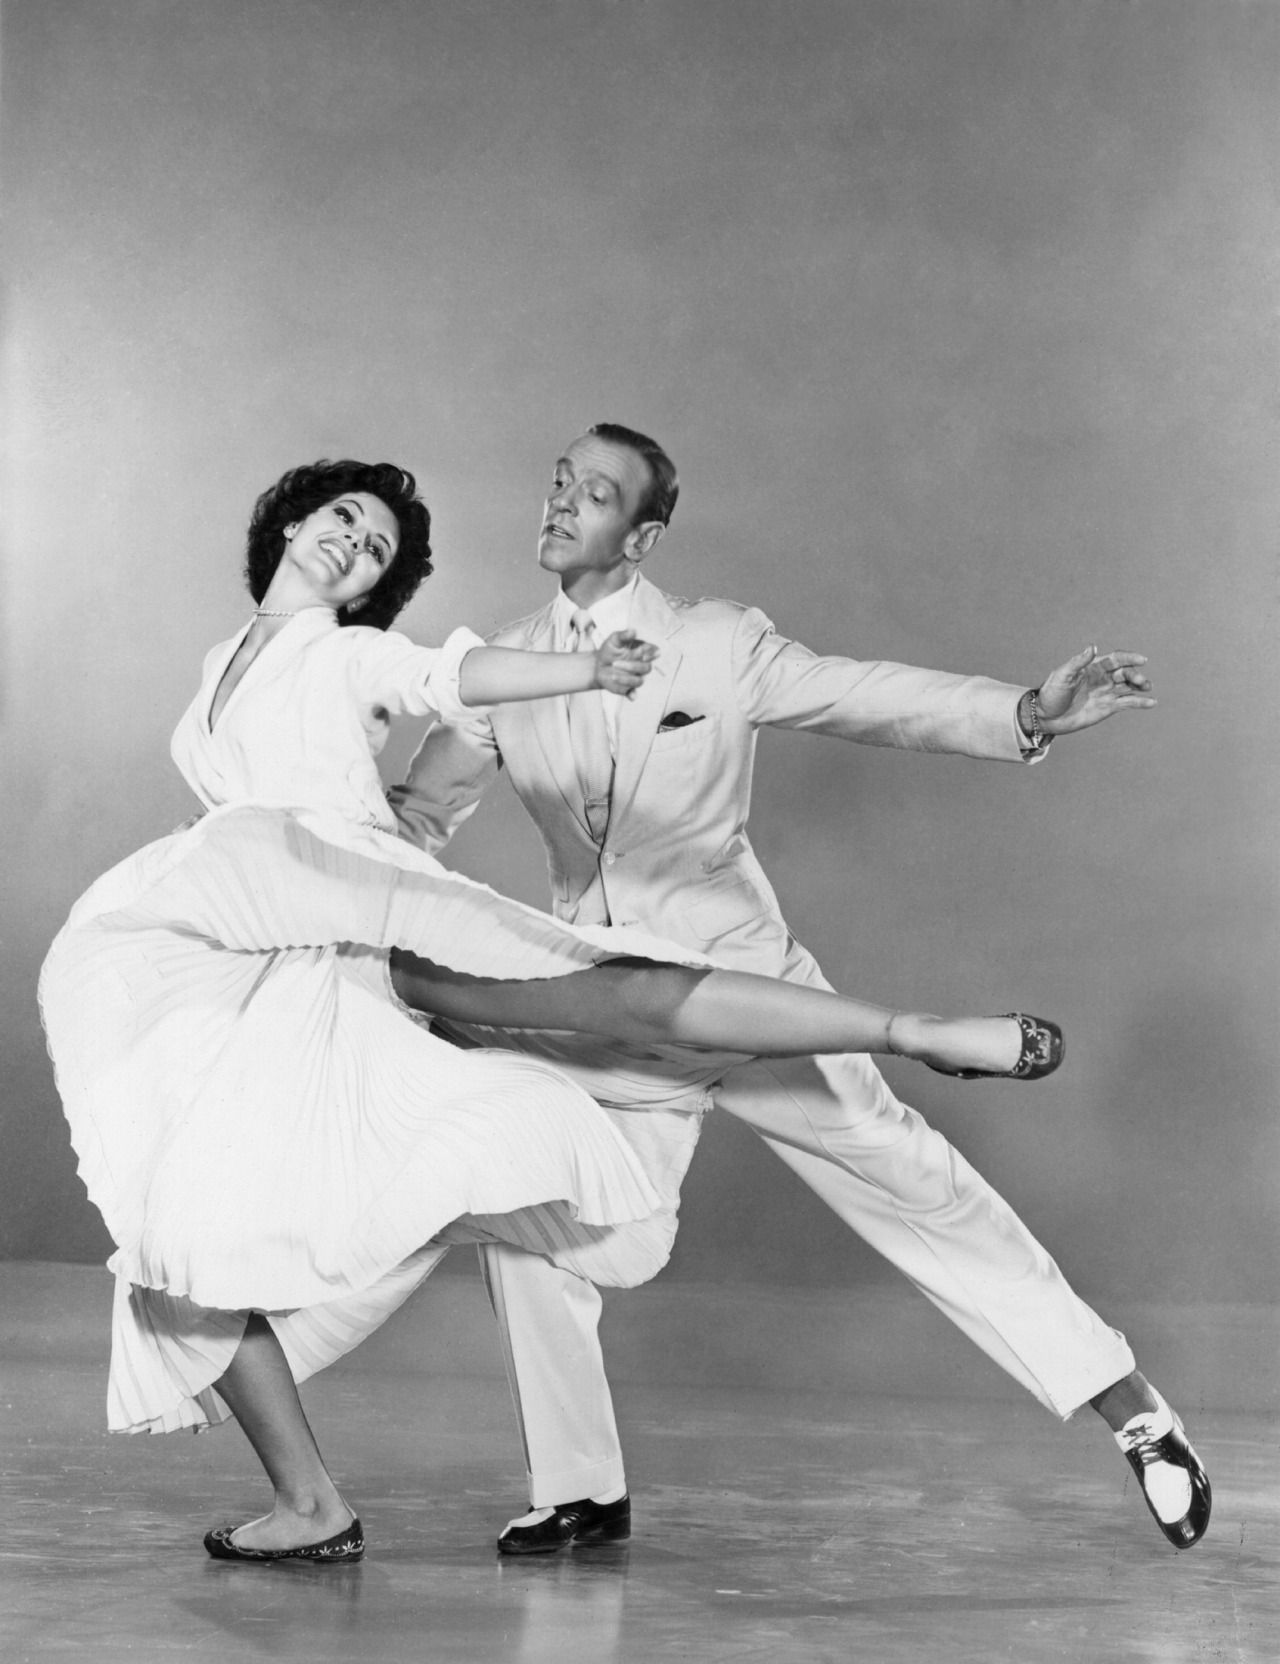 Evenghostandhorse Cyd Charisse Fred Astaire The Band Wagon 1953 Fred Astaire Dancing Fred Astaire Cyd Charisse